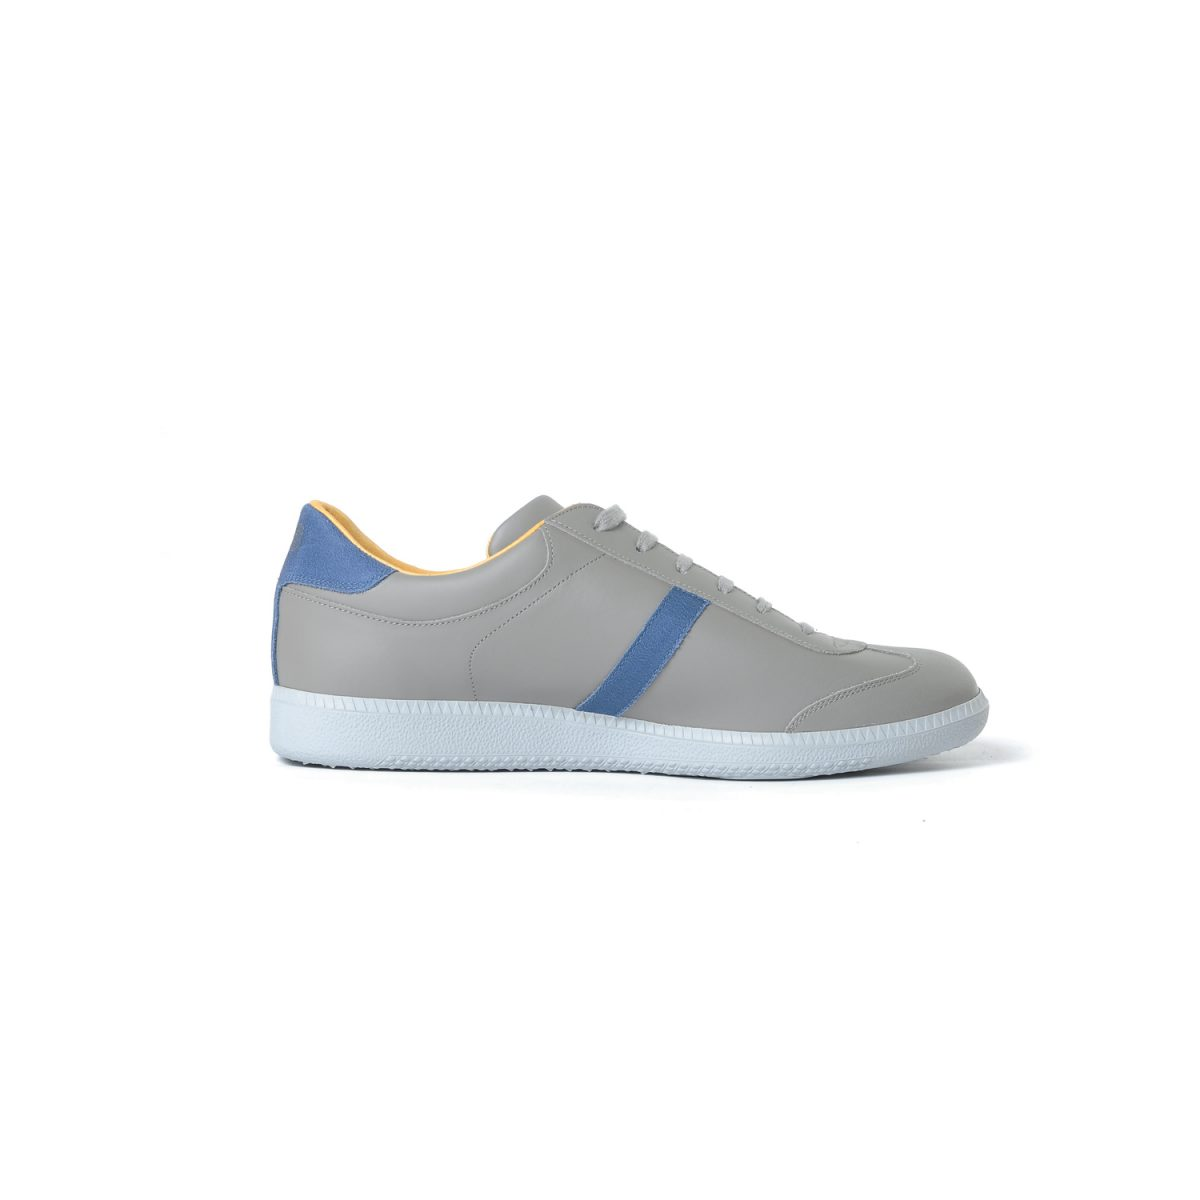 Tisza shoes - Compakt - Grey-blue